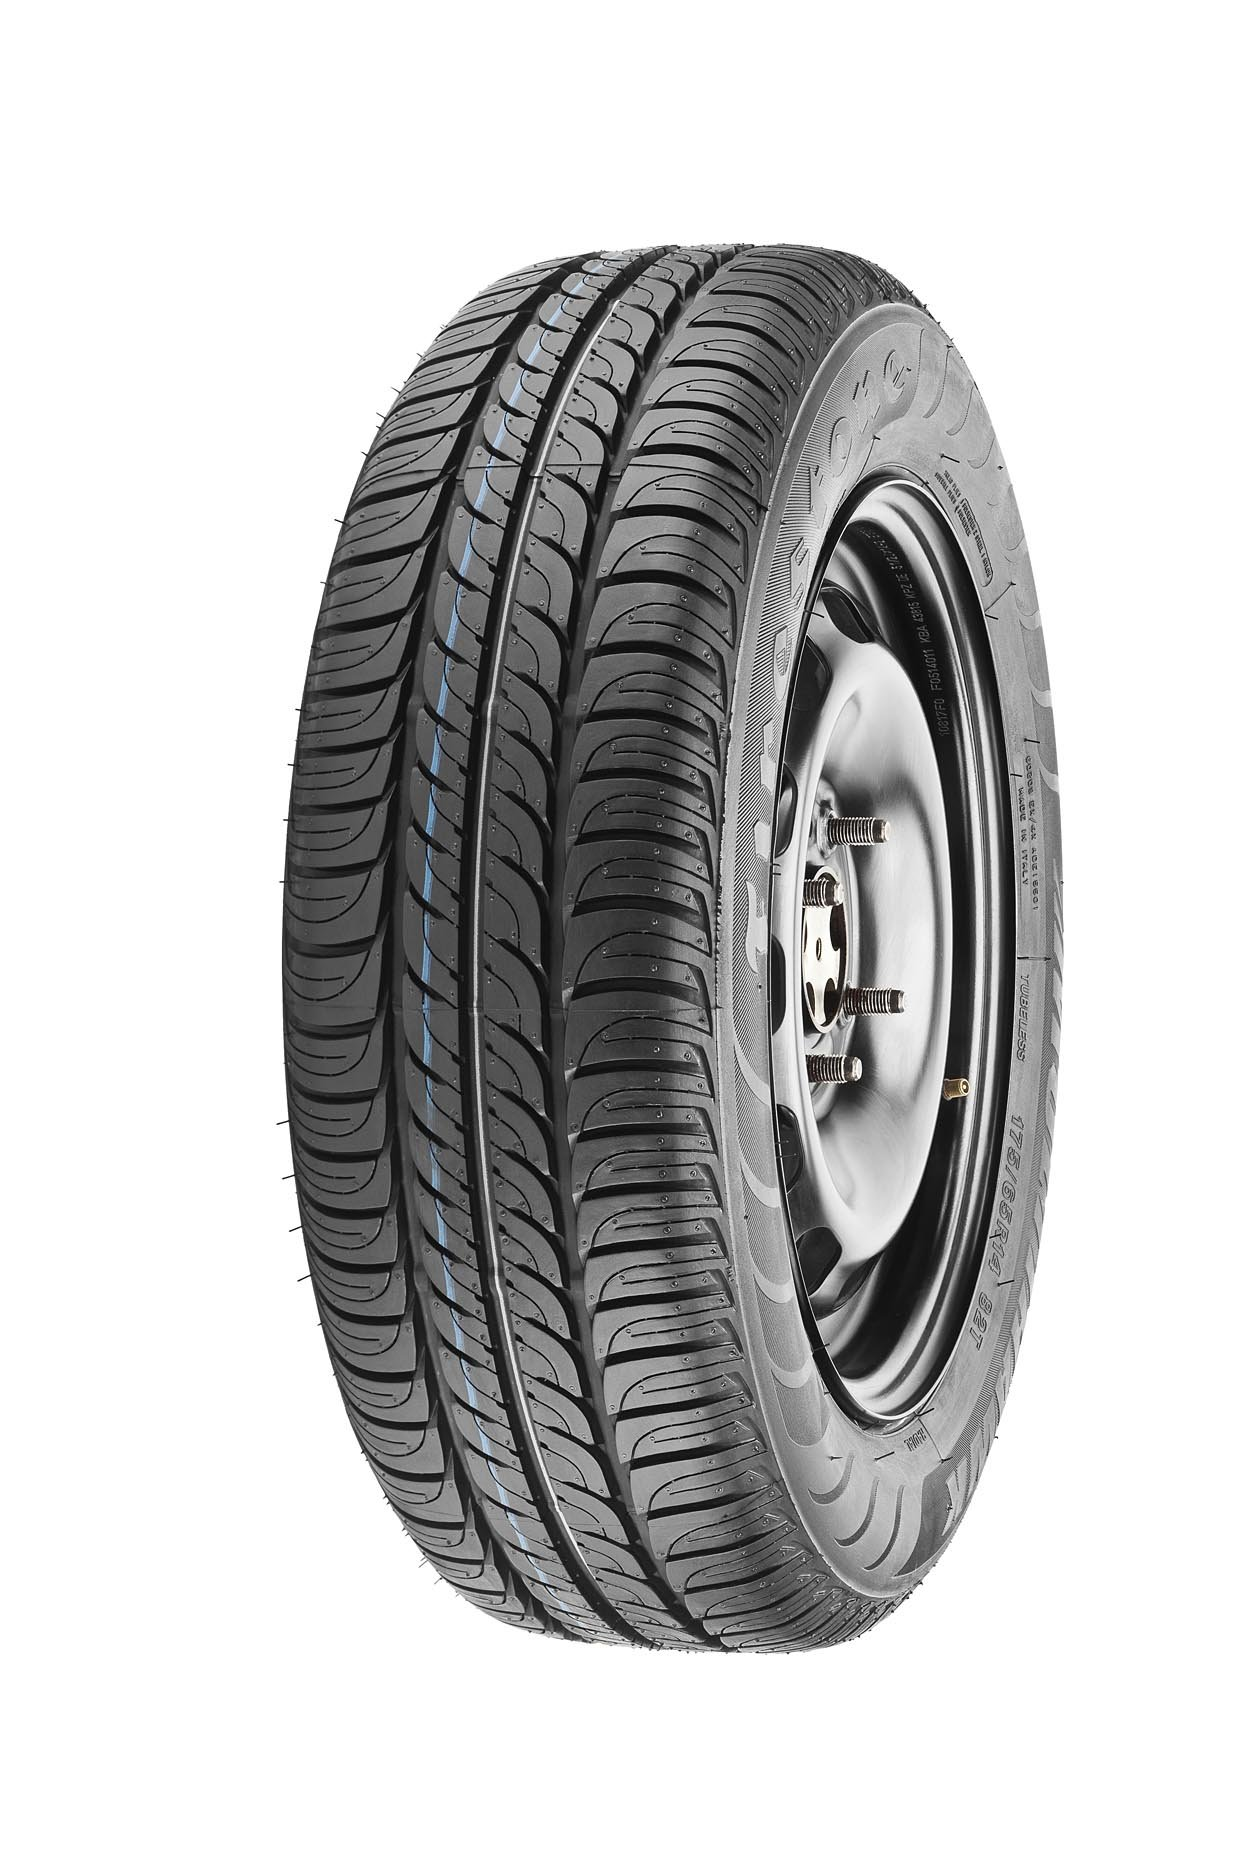 Изображение   ! 1X 175/65R13 ПОКРЫШКА MULTIHAWK FIRESTONE